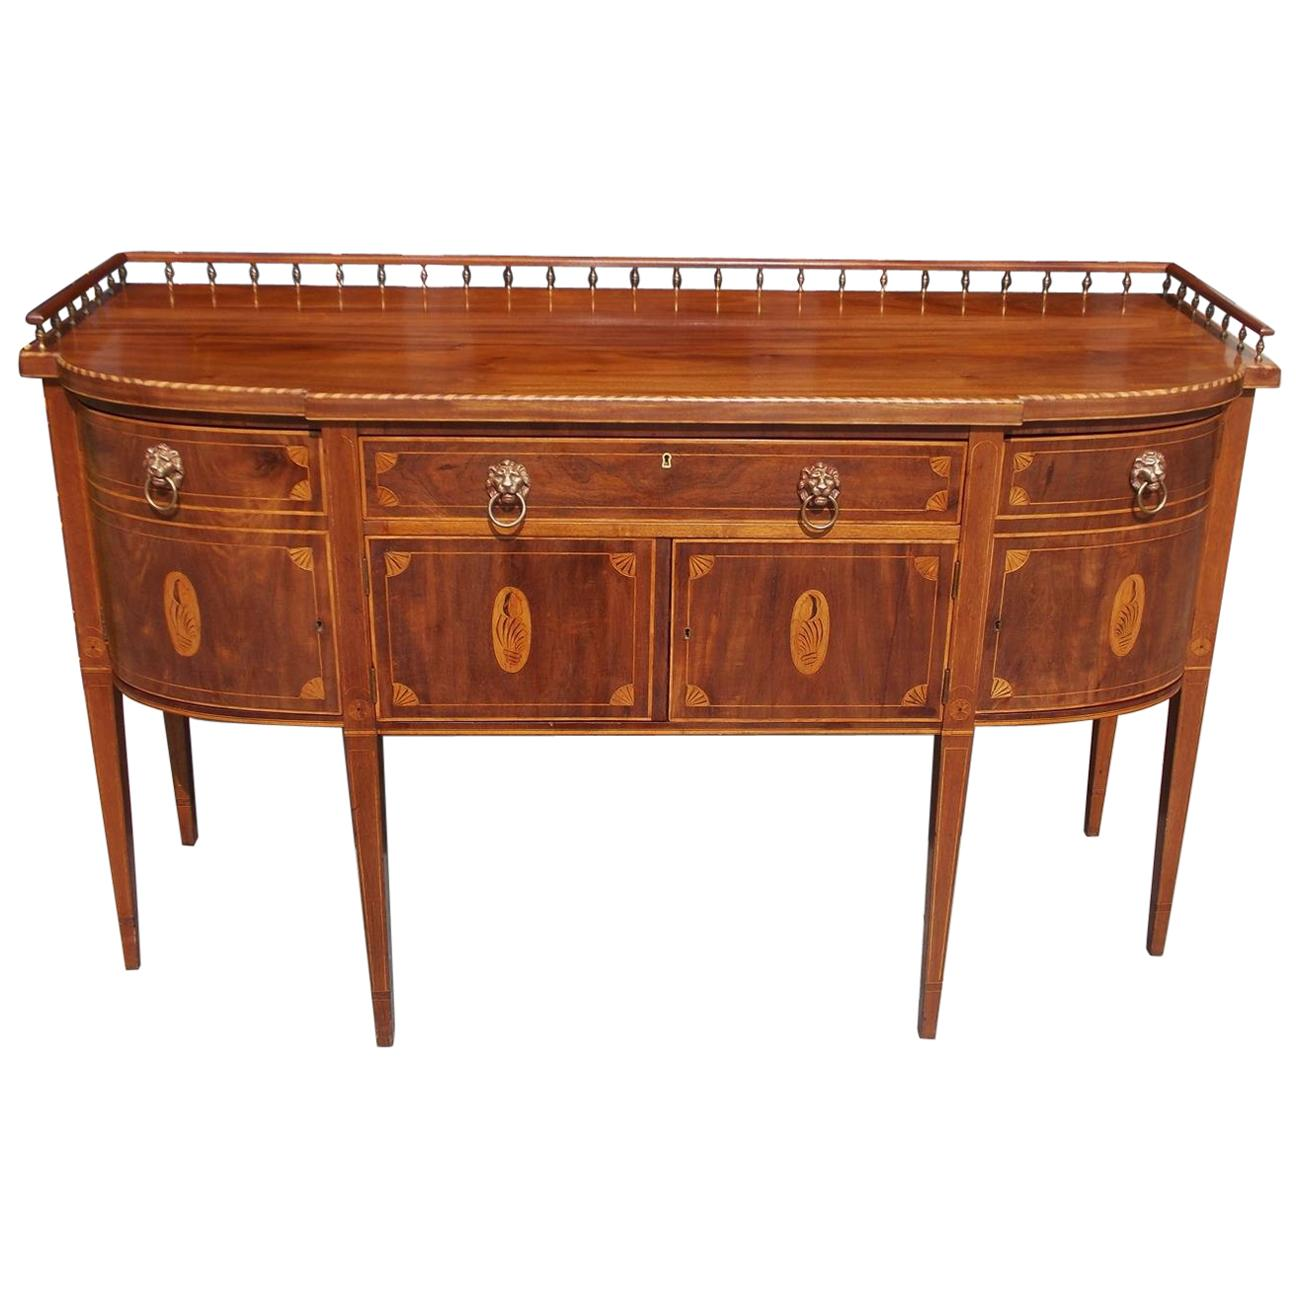 American Mahogany Gallery Sideboard with Conch Shell and Patera Inlays. C. 1840